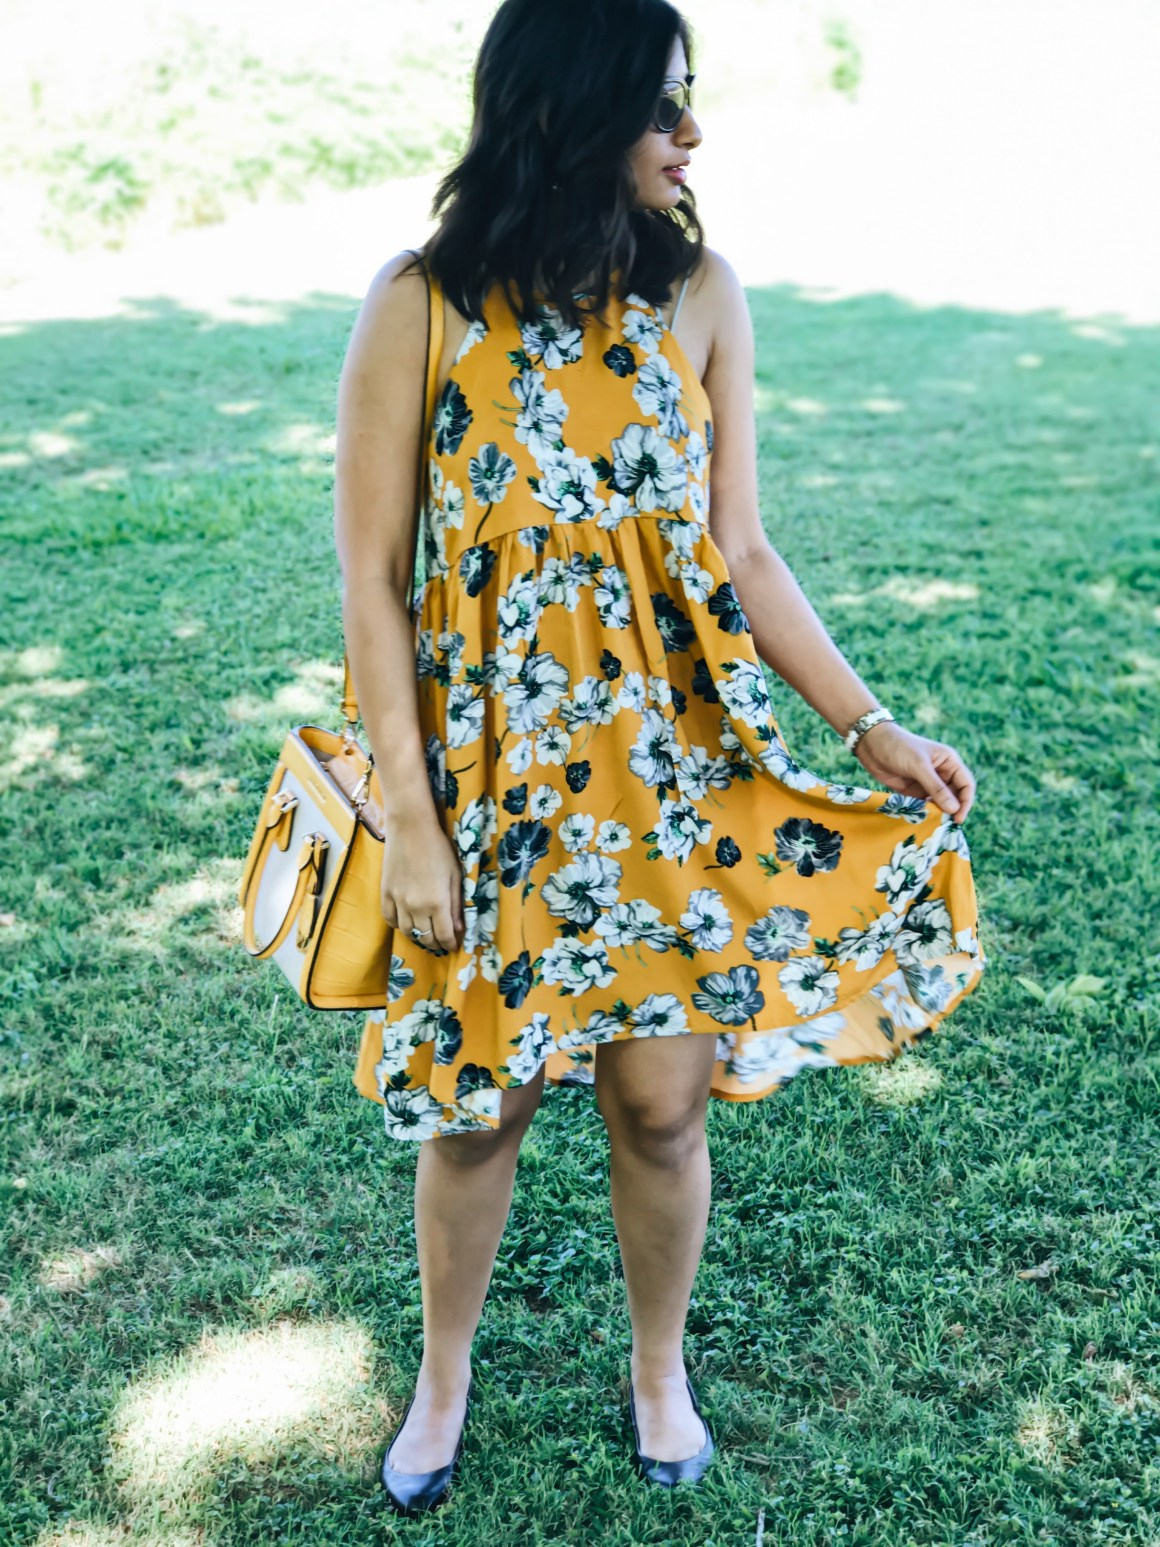 Yellow Floral Swing Dress - Zaful, Michael Kors Yellow Satchel, Dr. Scholls memory foam flats